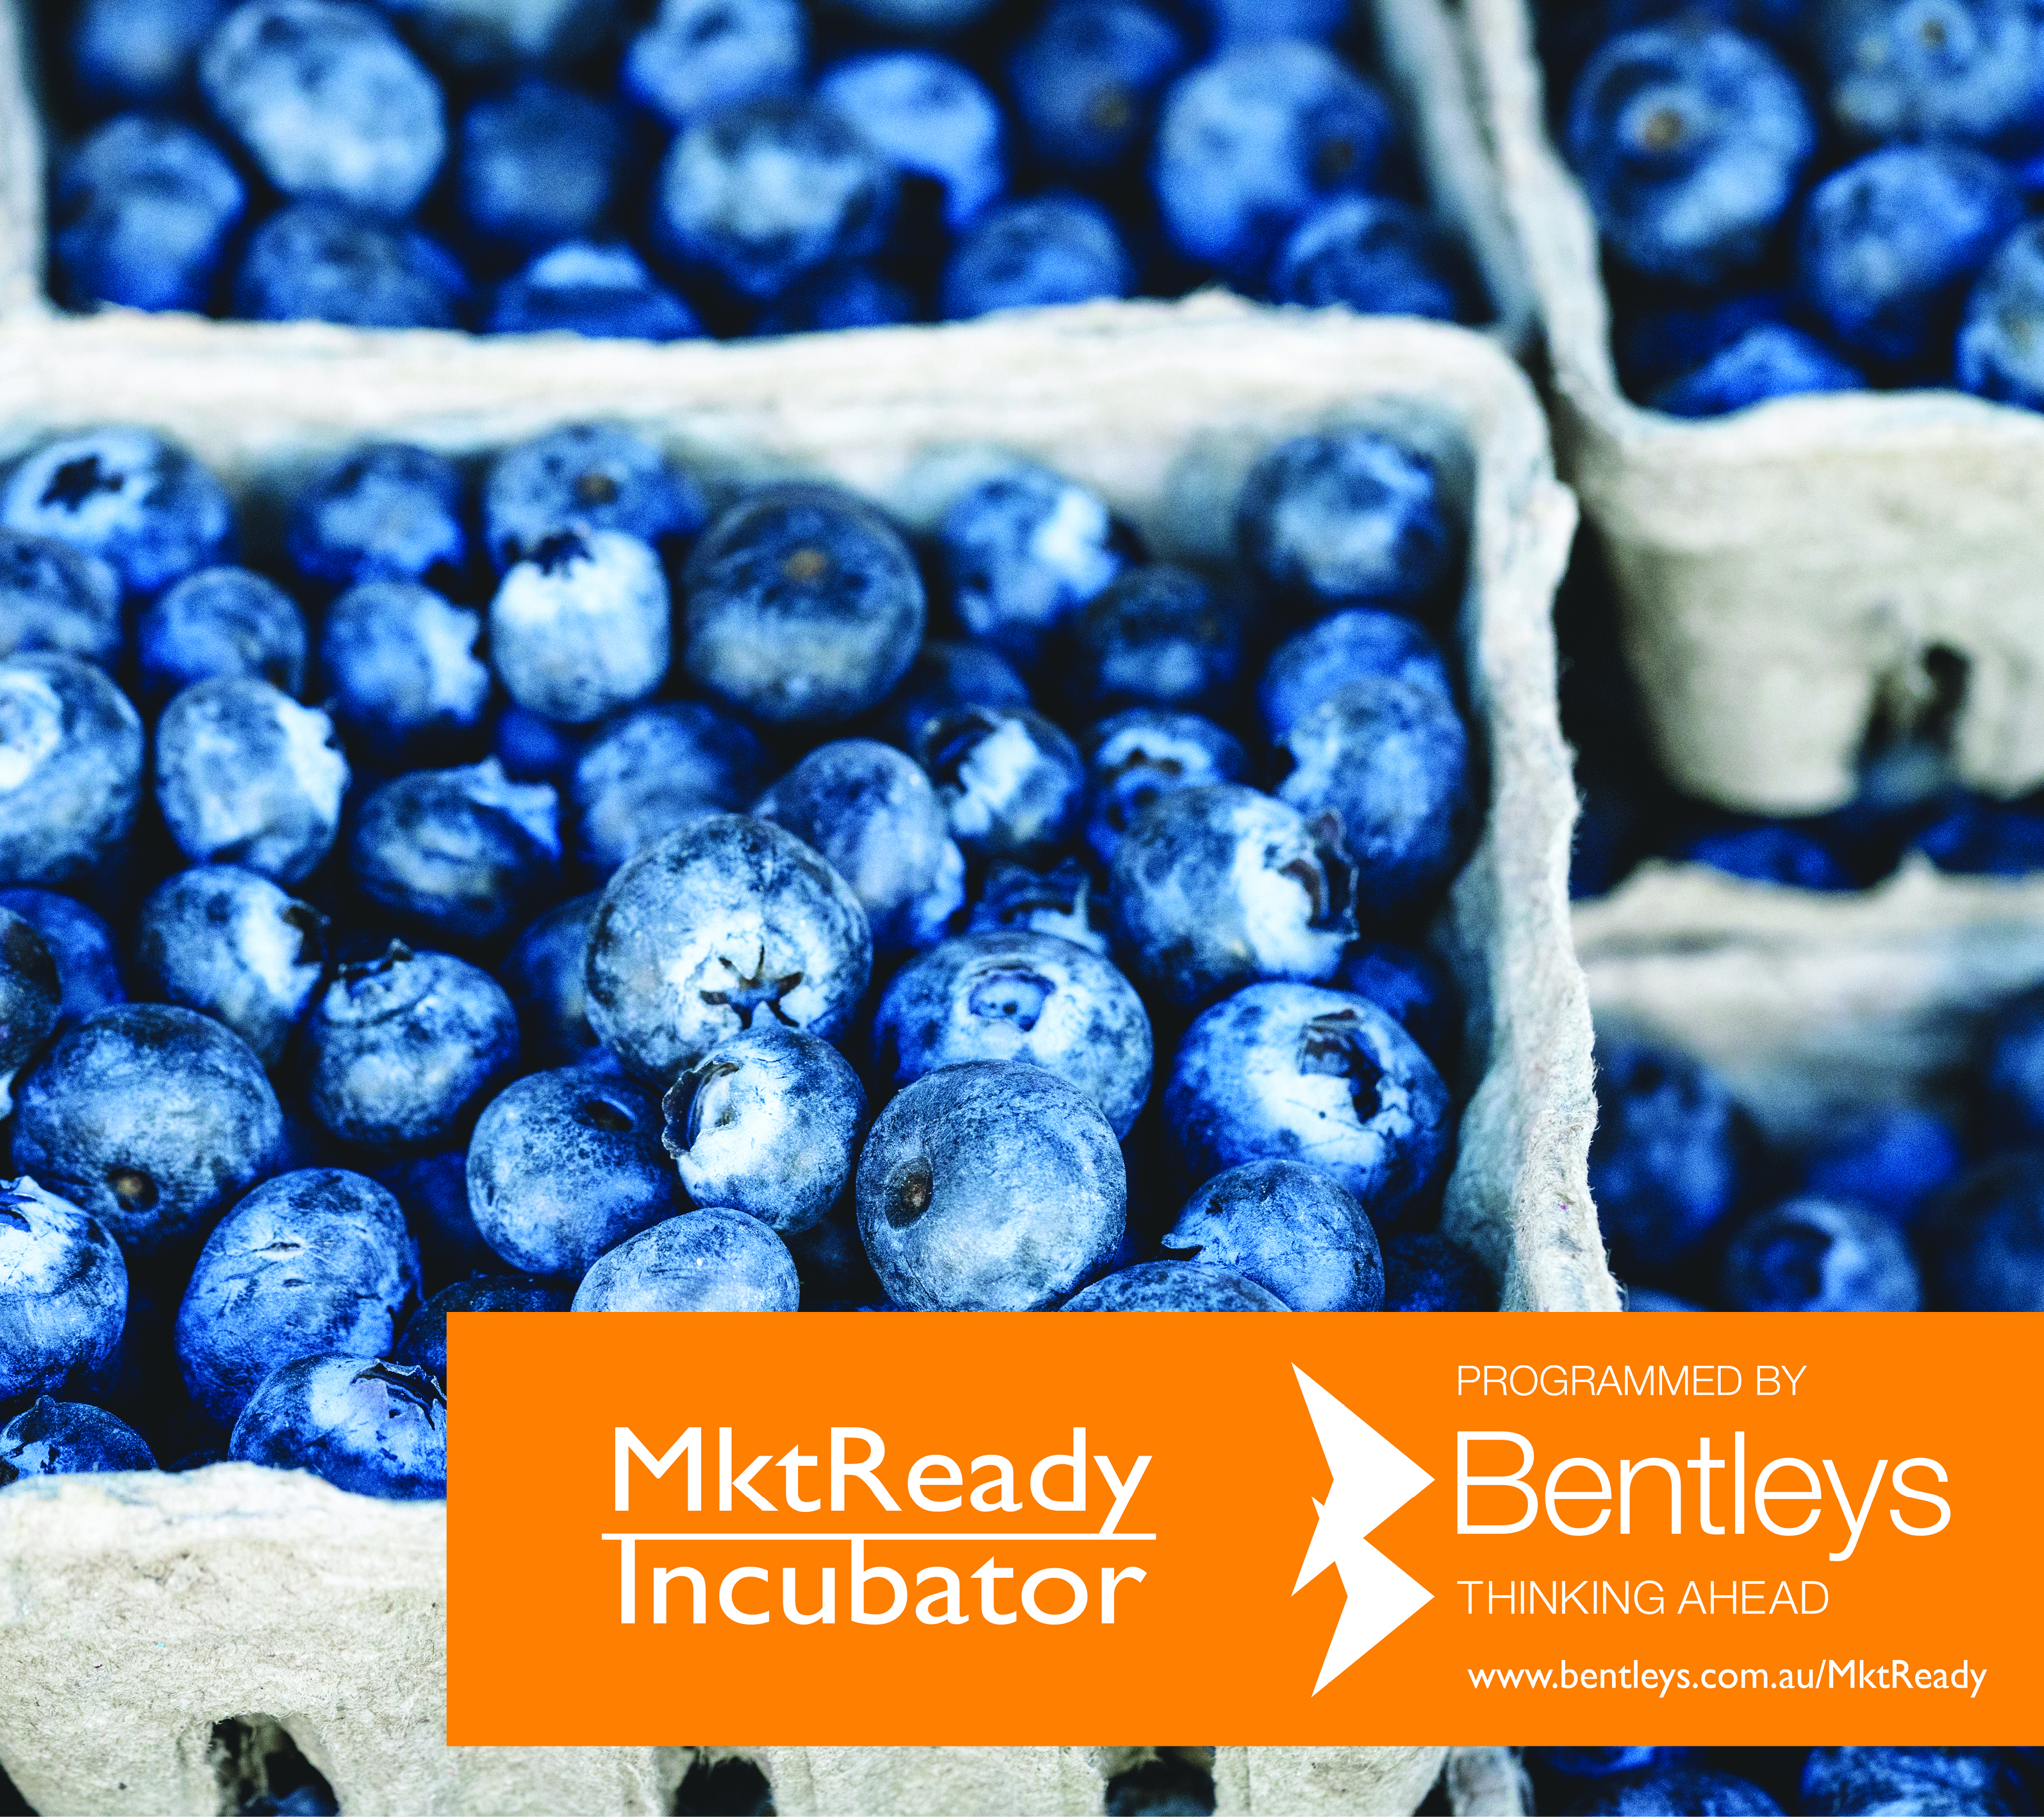 MktReady Incubator Program